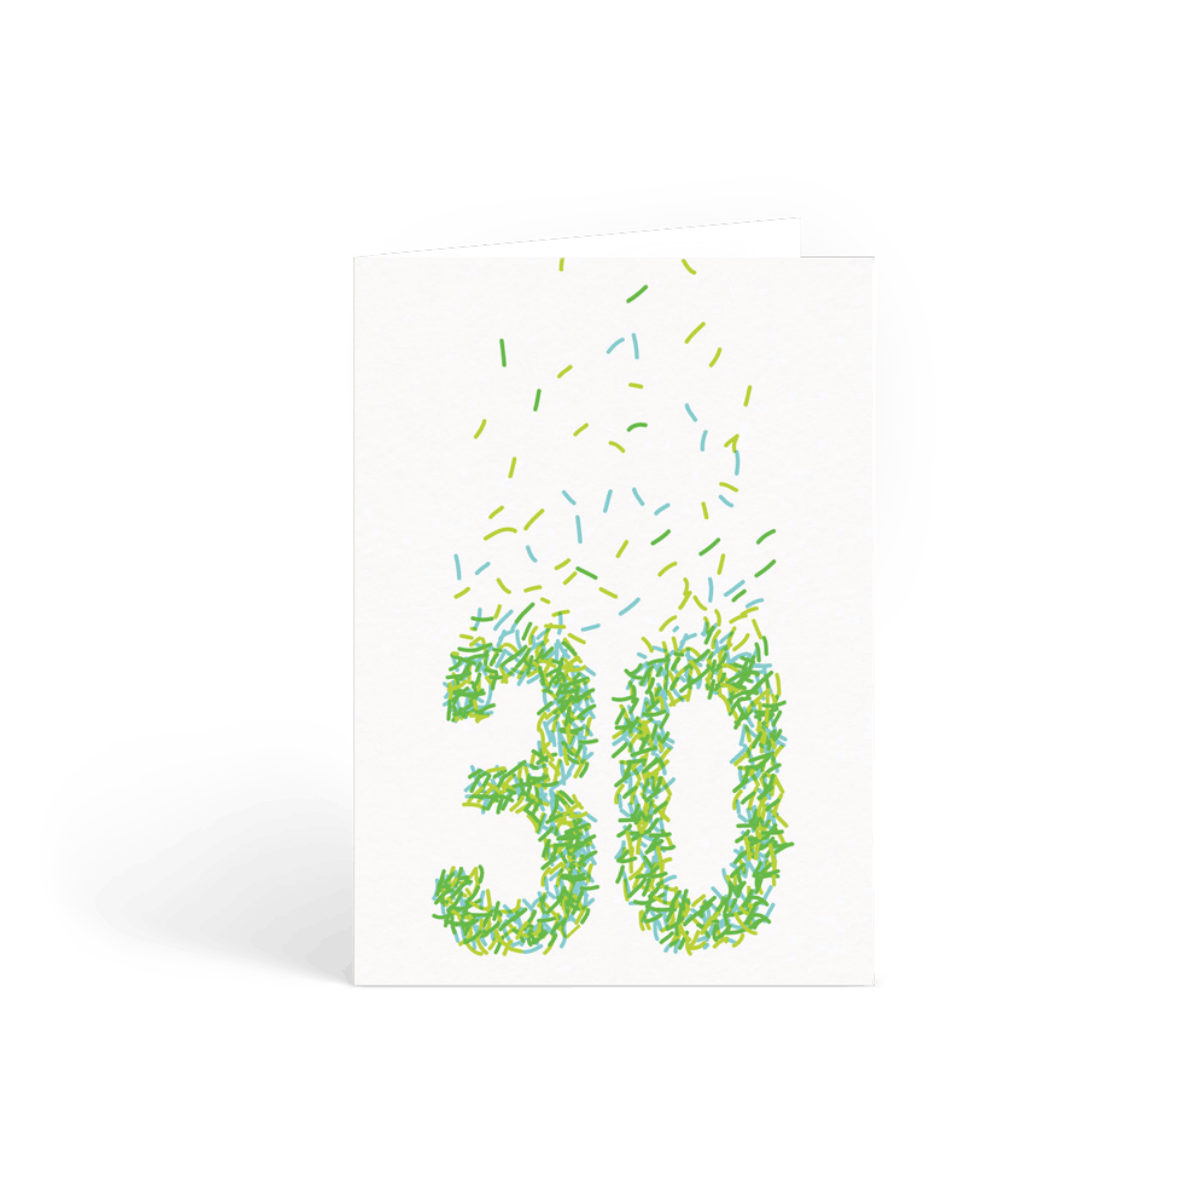 Https%3a%2f%2fwww.papier.com%2fproduct image%2f3497%2f2%2f30th sprinkles 935 avant 1453910853.png?ixlib=rb 1.1